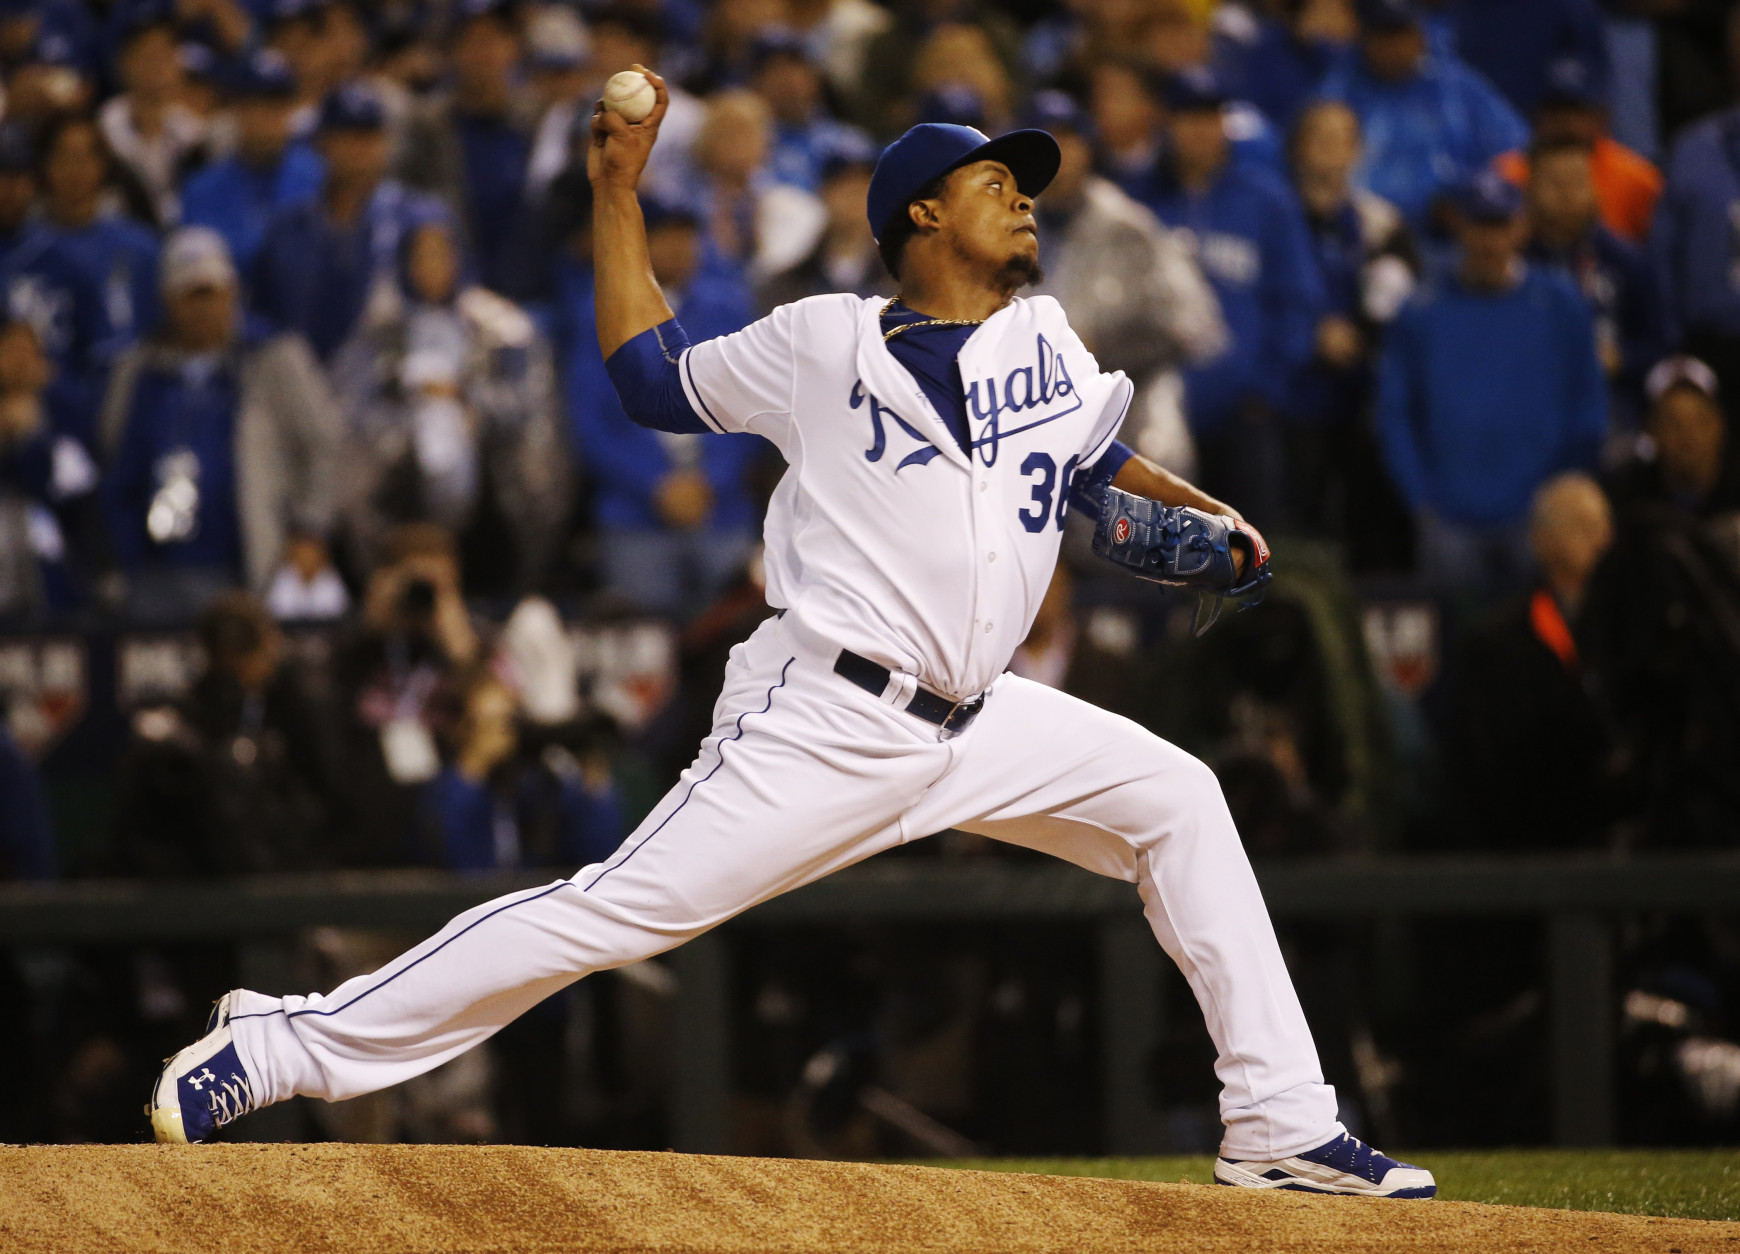 Kansas City Royals pitcher Edinson Volquez throws during the first inning of Game 1 of the Major League Baseball World Series against the New York Mets Tuesday, Oct. 27, 2015, in Kansas City, Mo. (AP Photo/Matt Slocum)